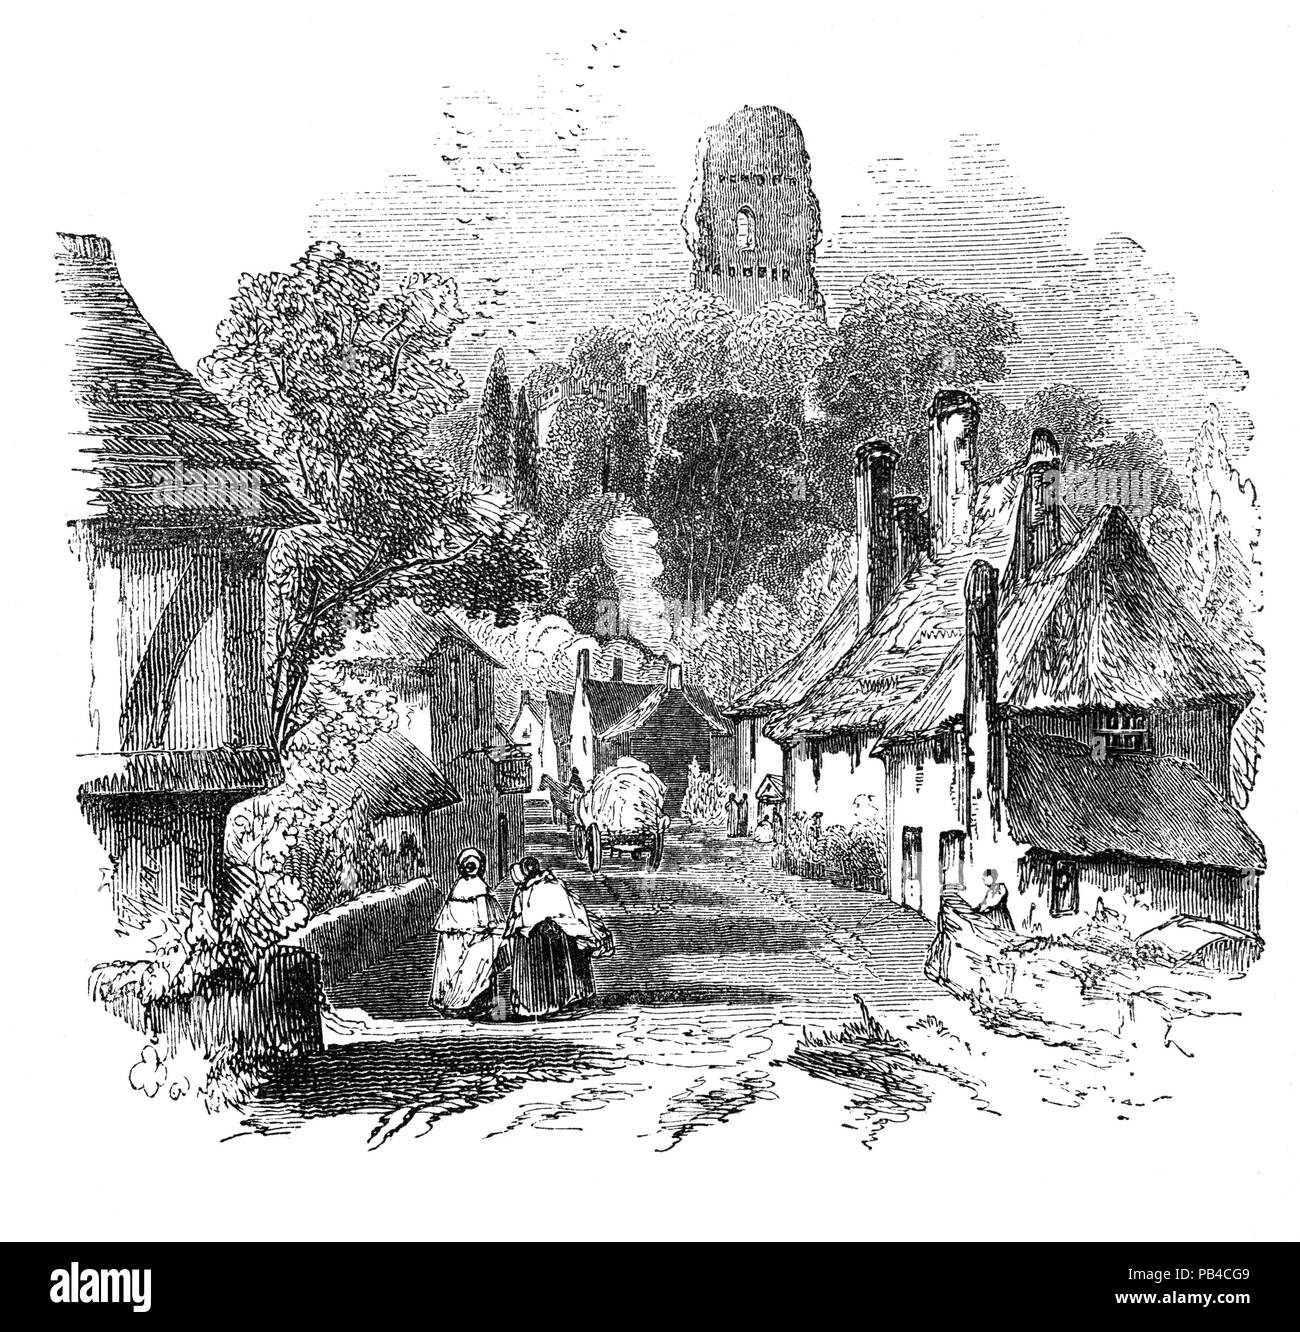 The ruins of Bramber Castle in the village of Bramber, West Sussex, England overlooking the River Adur. It was constructedabout 1070, along with the Norman church, on a natural mound. Except for a period of confiscation during the reign of King John, the castle remained in the ownership of the de Braose family until the male line died out in 1326. Little is known of Bramber Castle's history. Records dating from the Civil War mention a 'skirmish' fought in the village in about 1642. - Stock Image